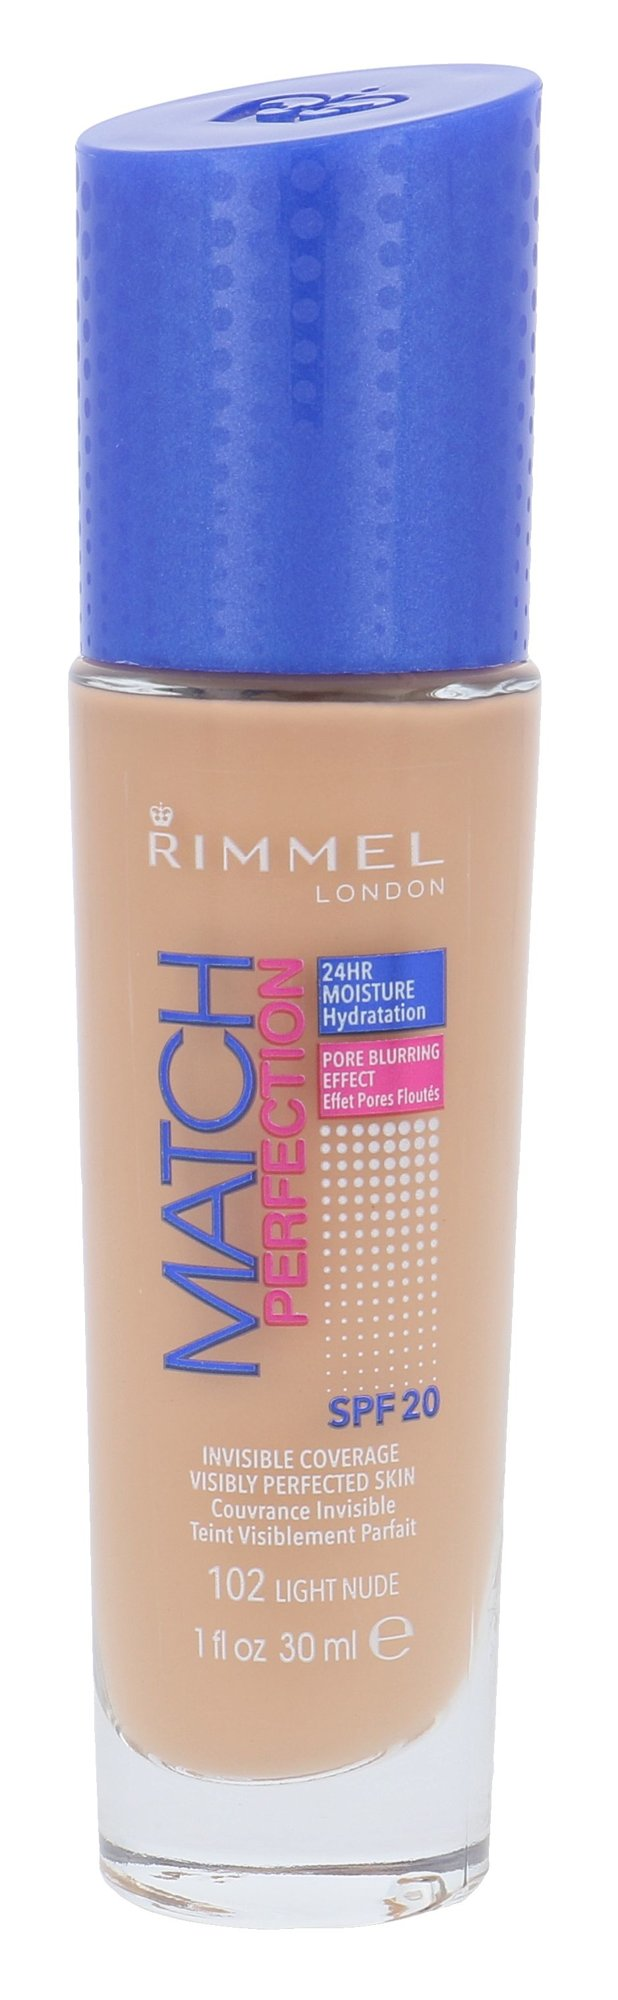 Rimmel London Match Perfection Cosmetic 30ml 102 Light Nude